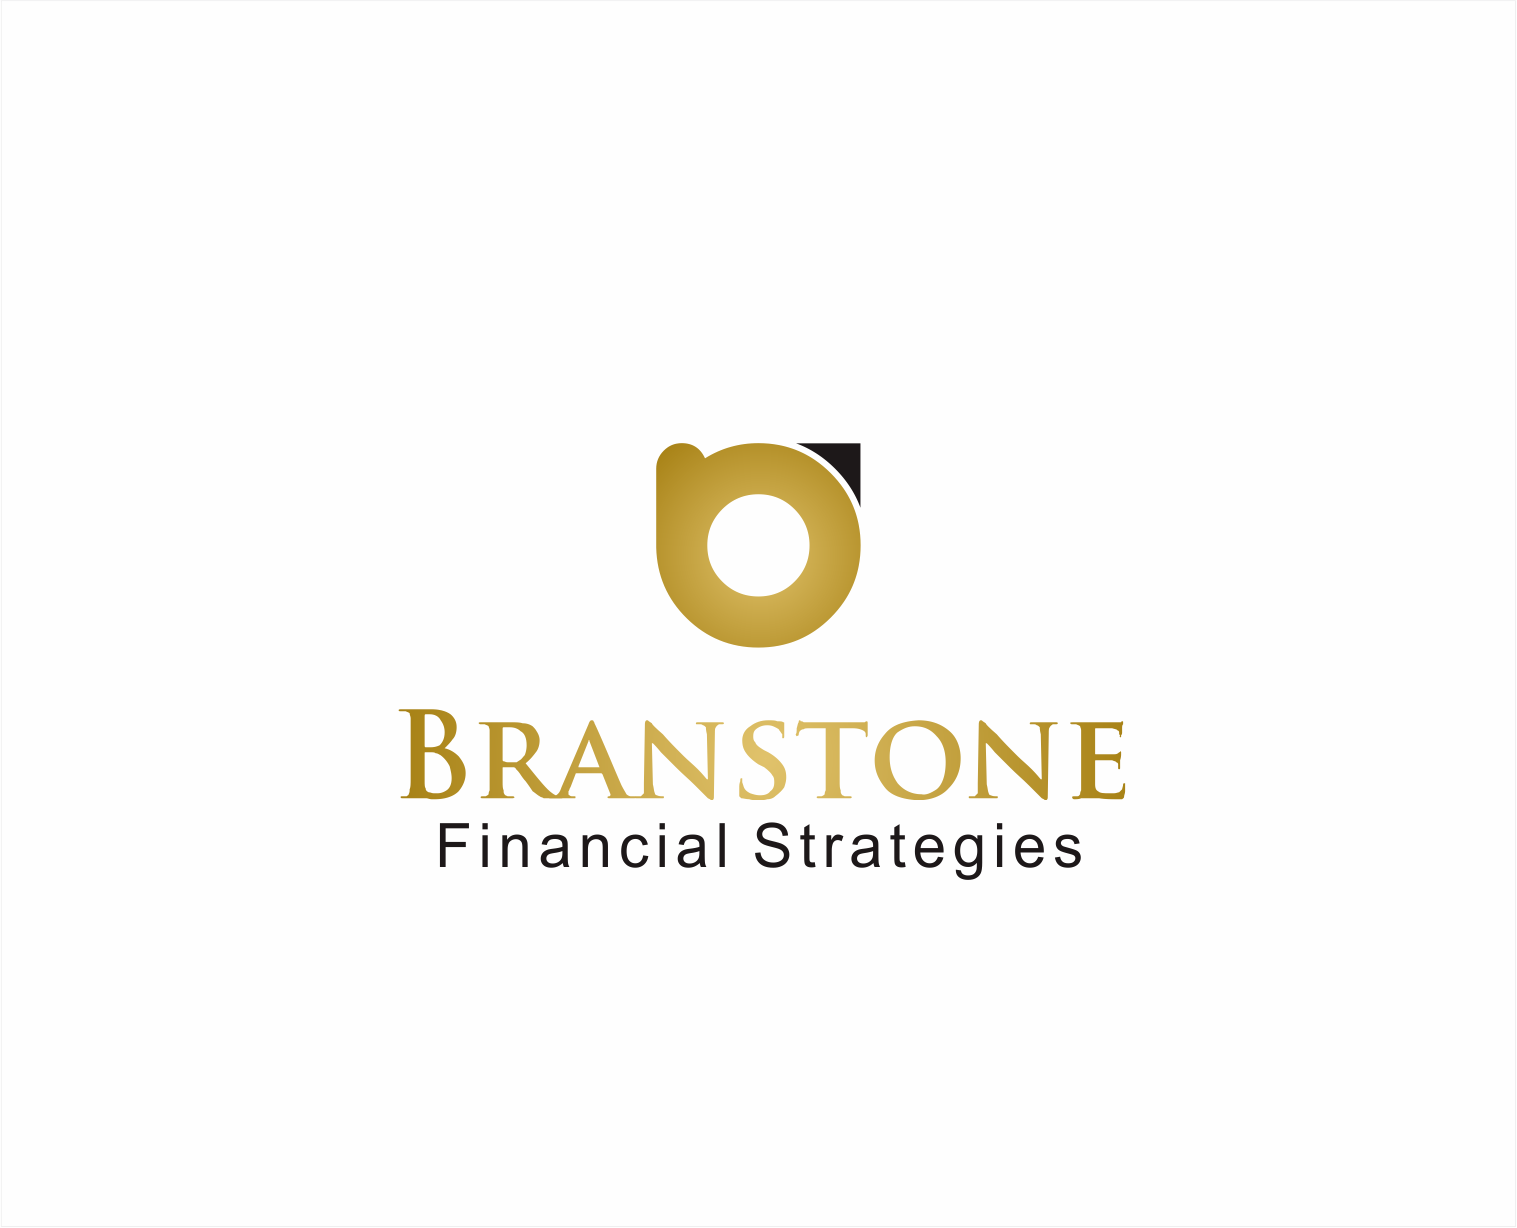 Logo Design by Armada Jamaluddin - Entry No. 206 in the Logo Design Contest Inspiring Logo Design for Branstone Financial Strategies.